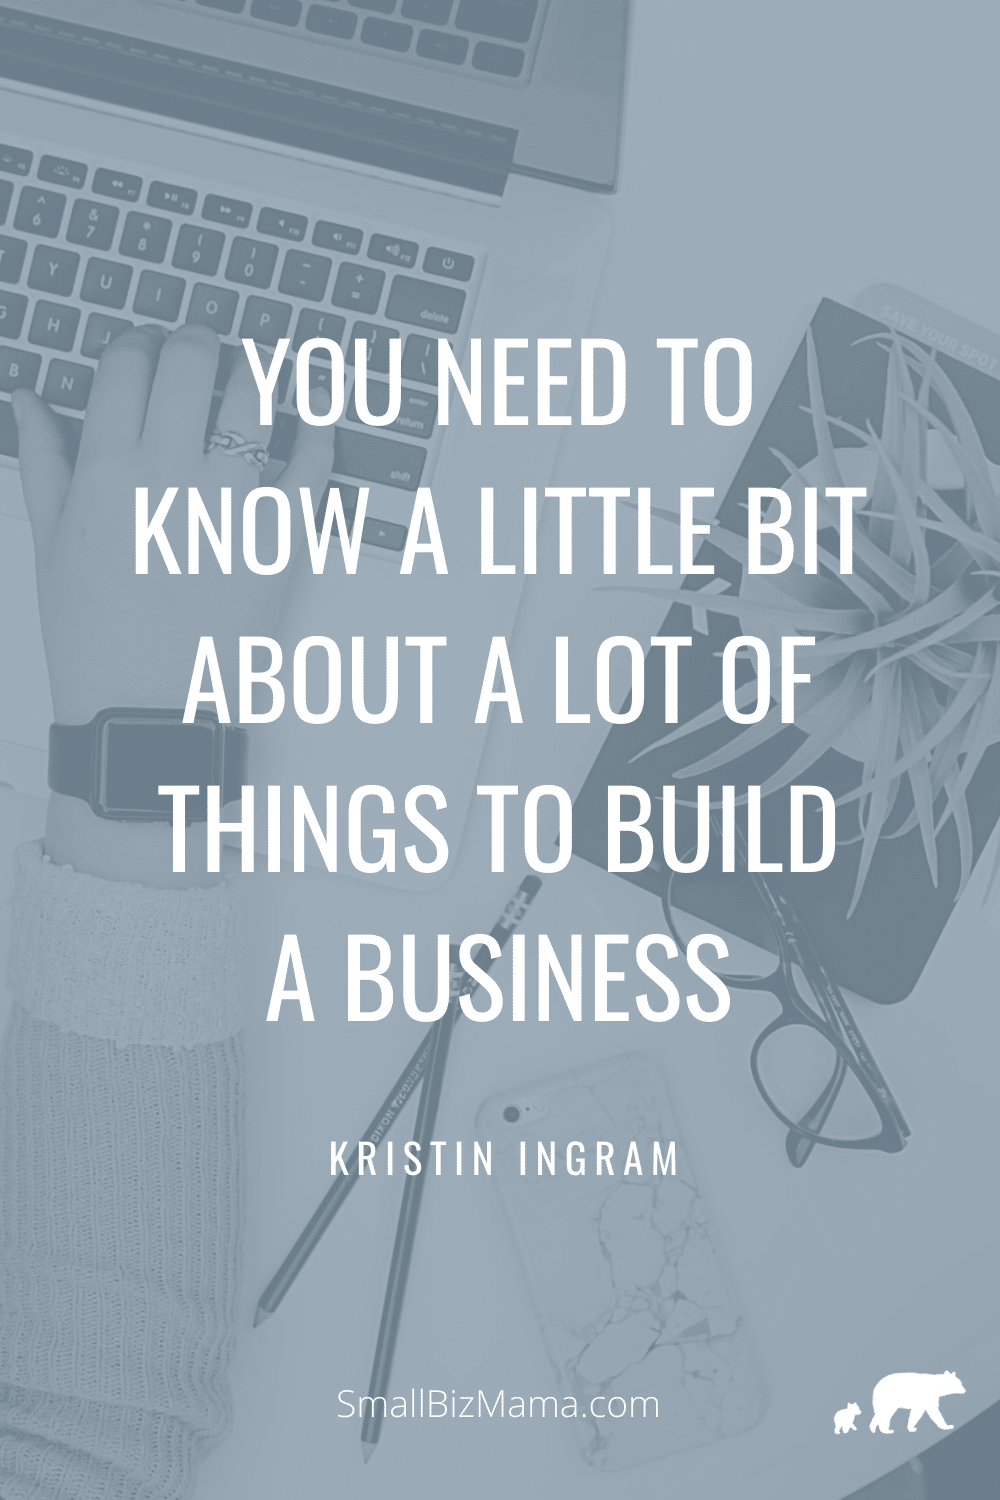 You need to know a little bit about a lot of things to build a business